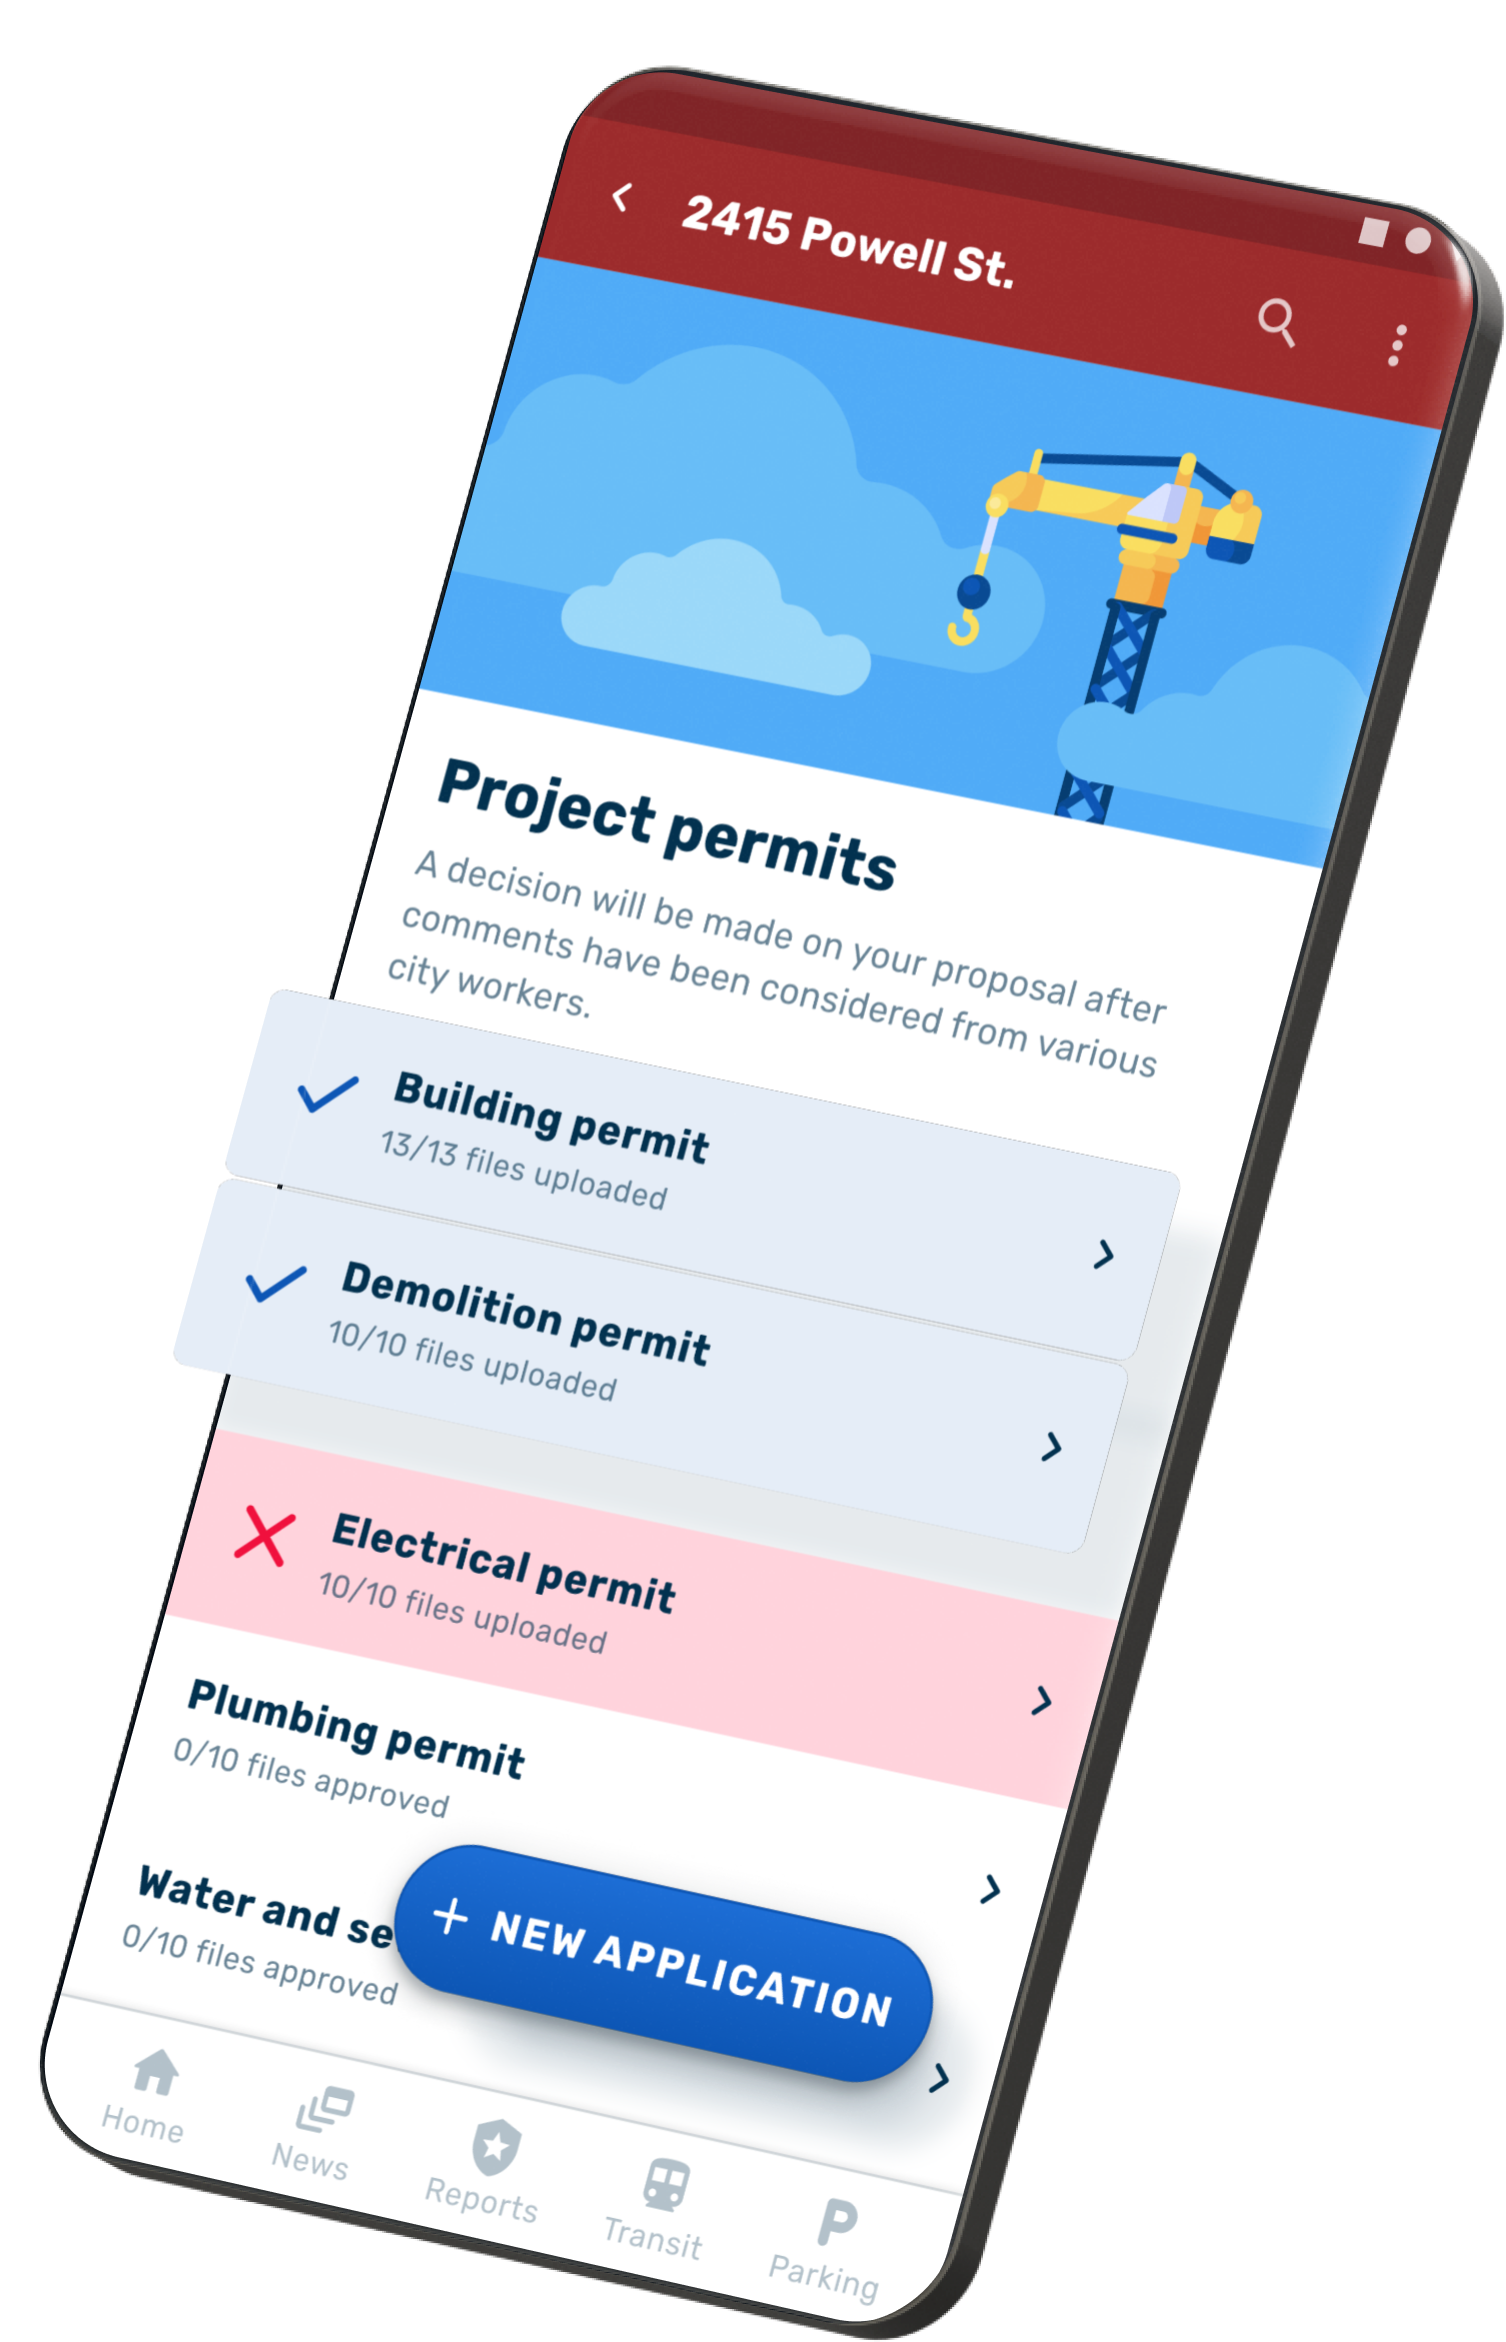 The Development Portal provides a centralized hub for managing e-permit applications, overseeing inspections, and everything else in between.